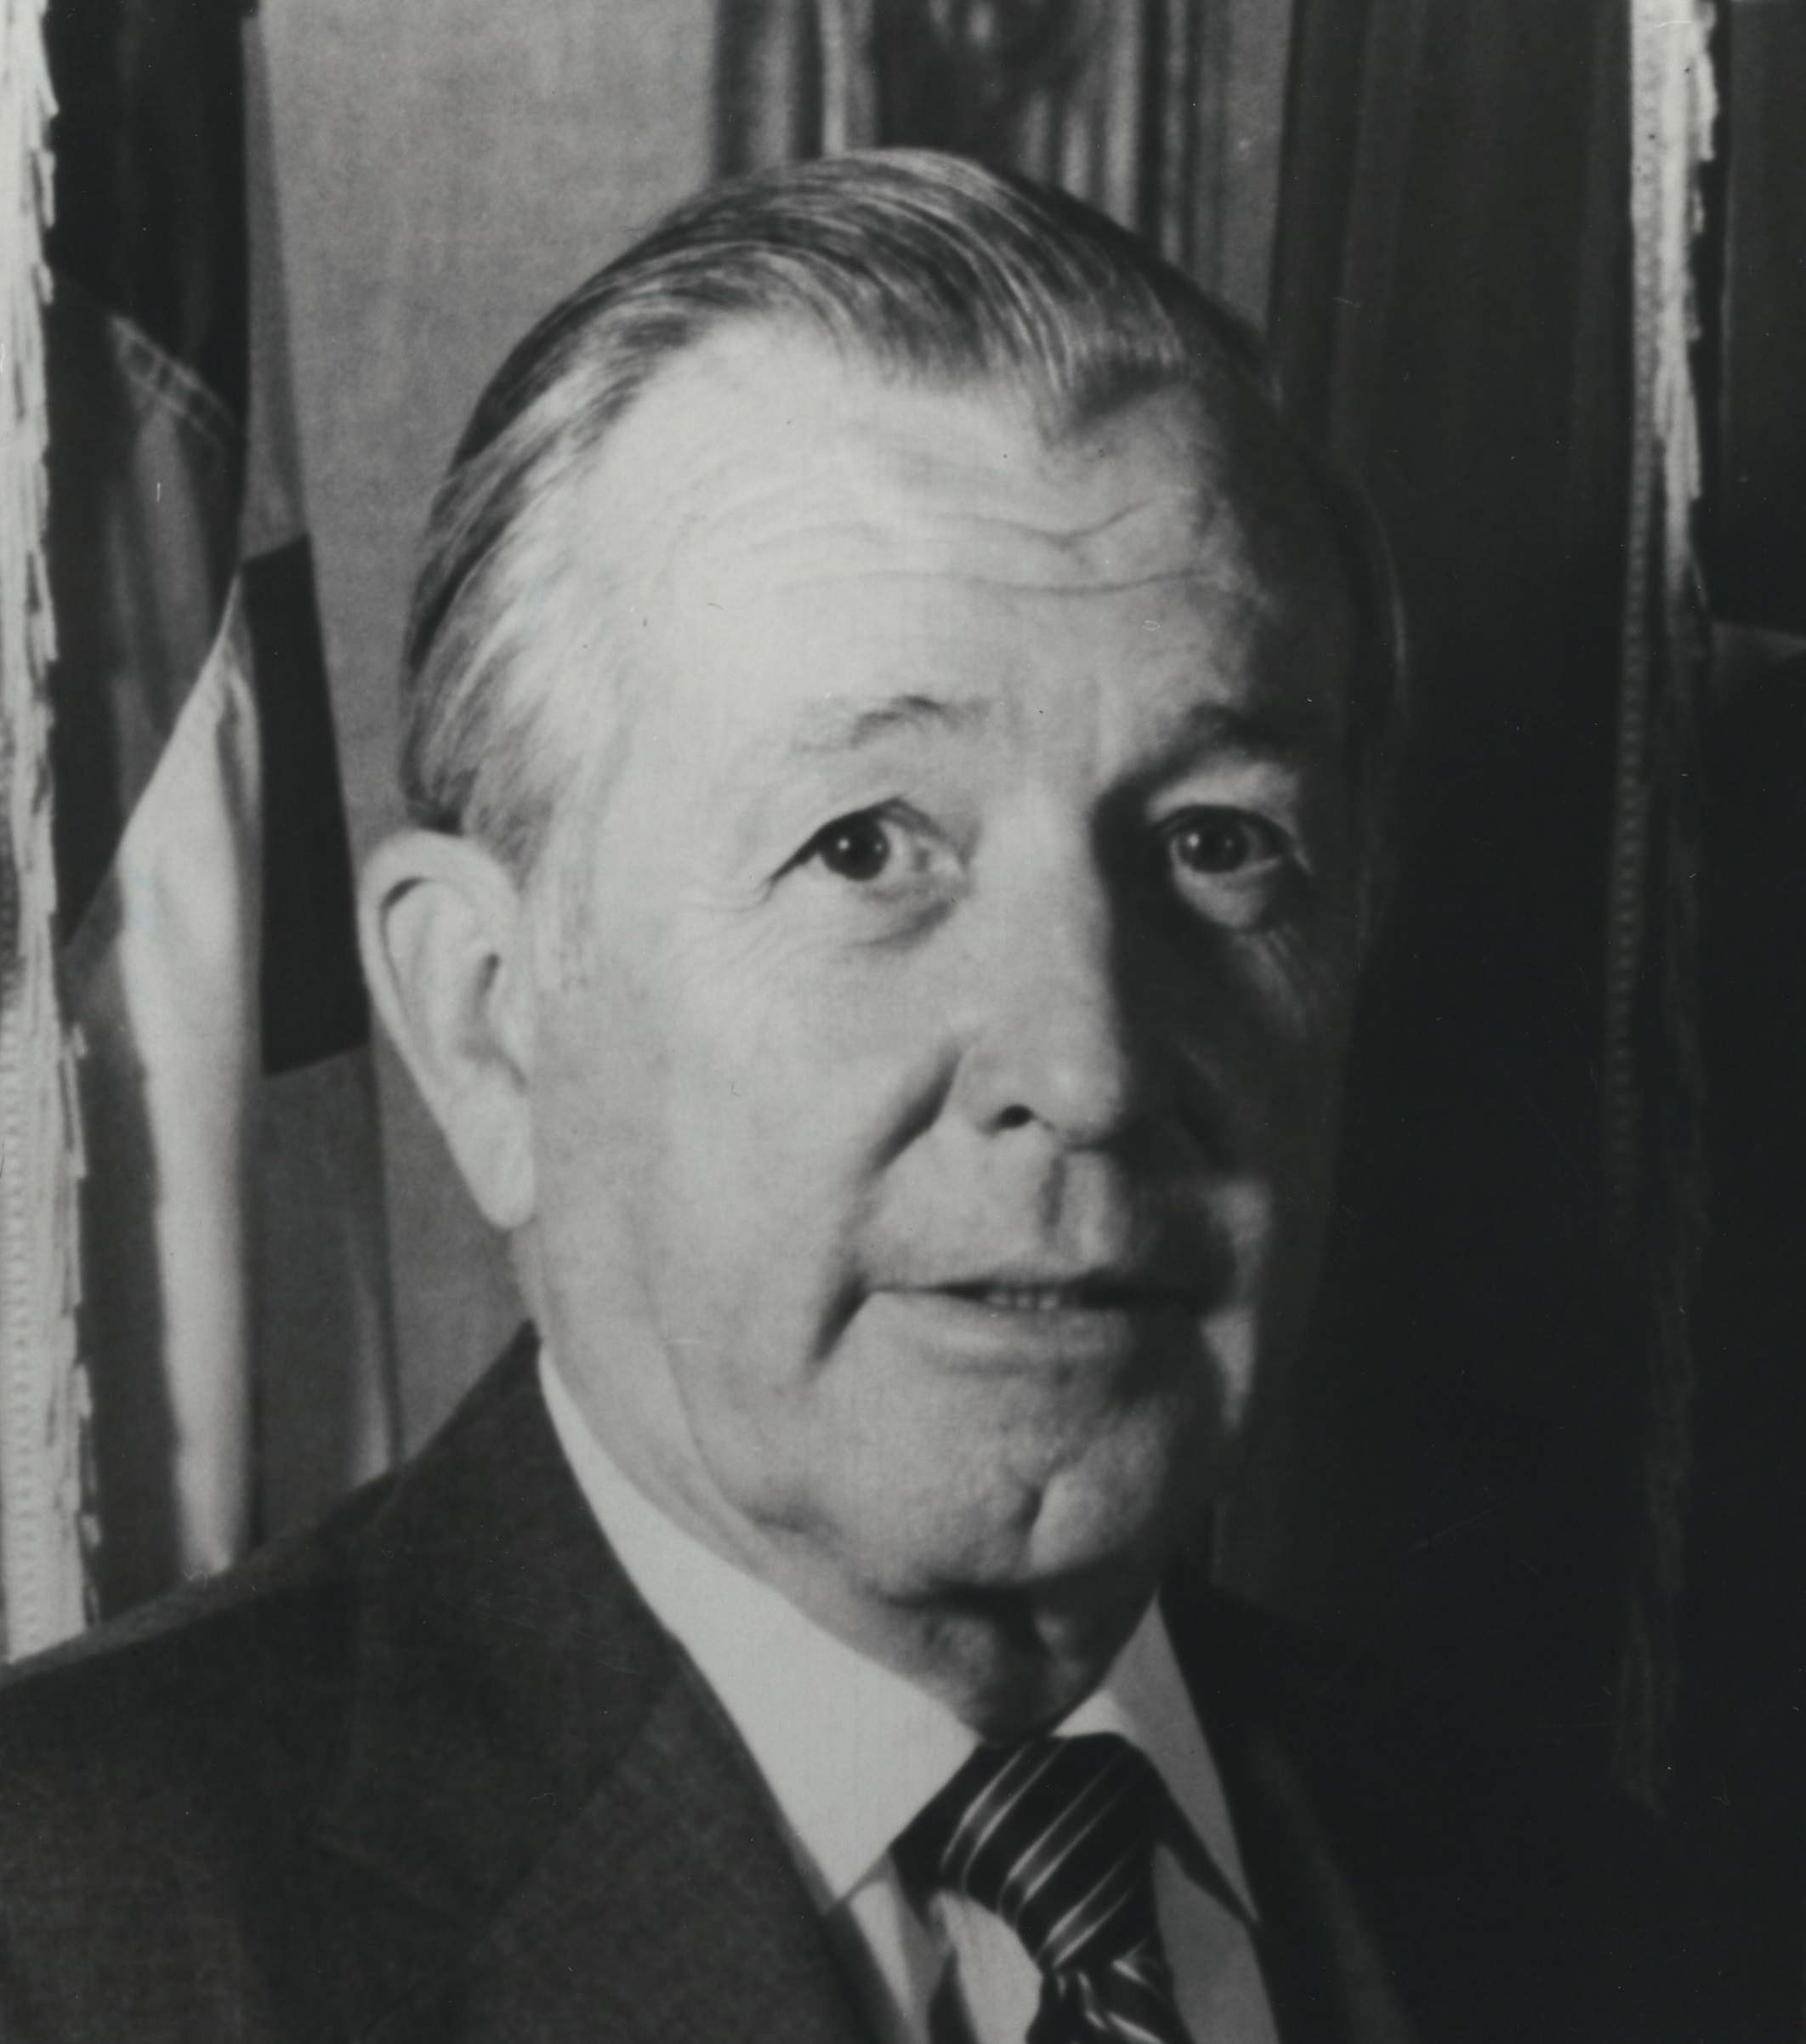 Donald Regan